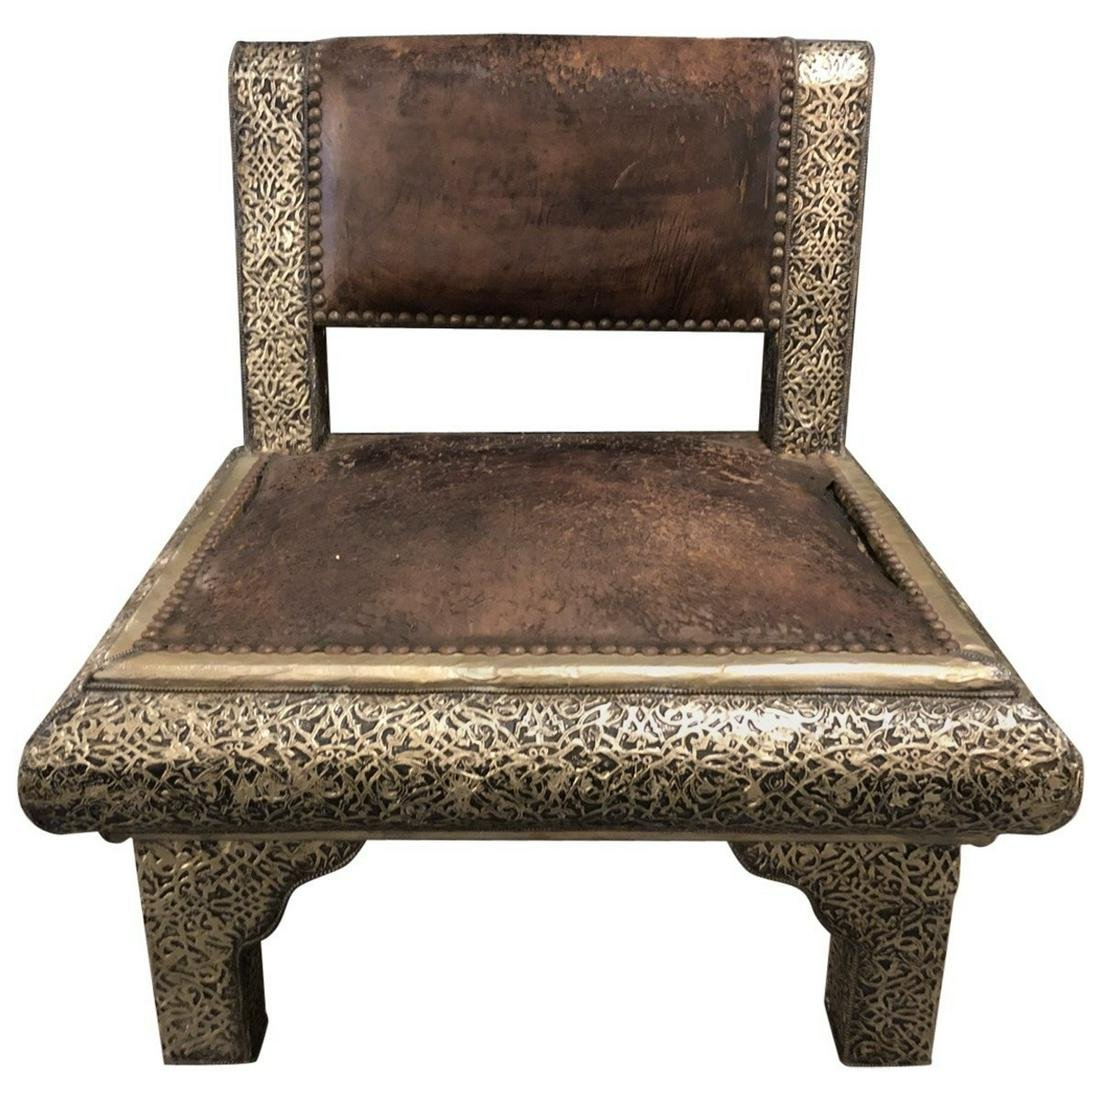 Moroccan Lounge Chair Early-20th Century